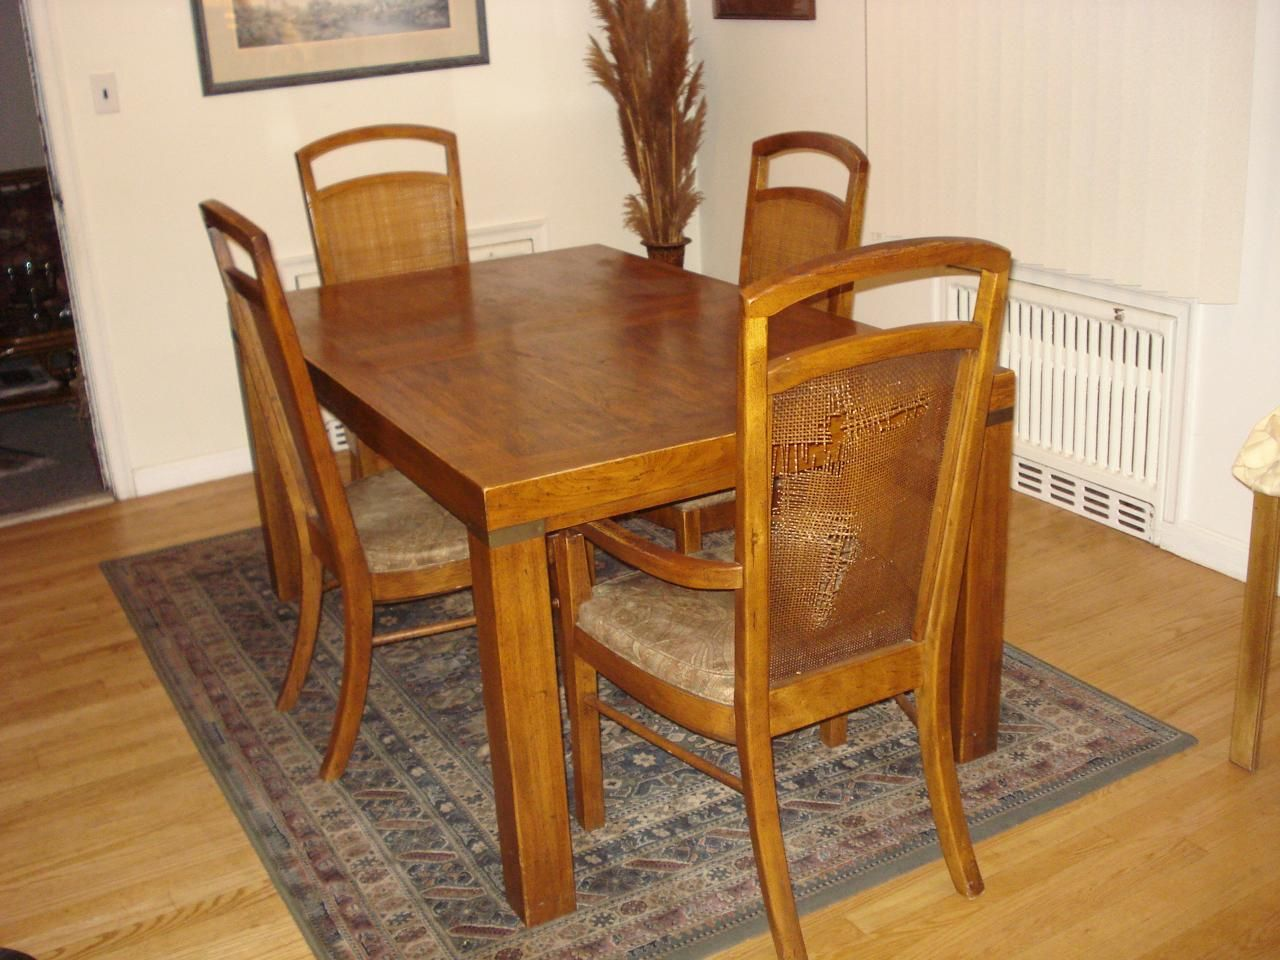 Heritage Dining Room Furniture Retro Furniture Dining Room Sets And Room Set On Pinterest